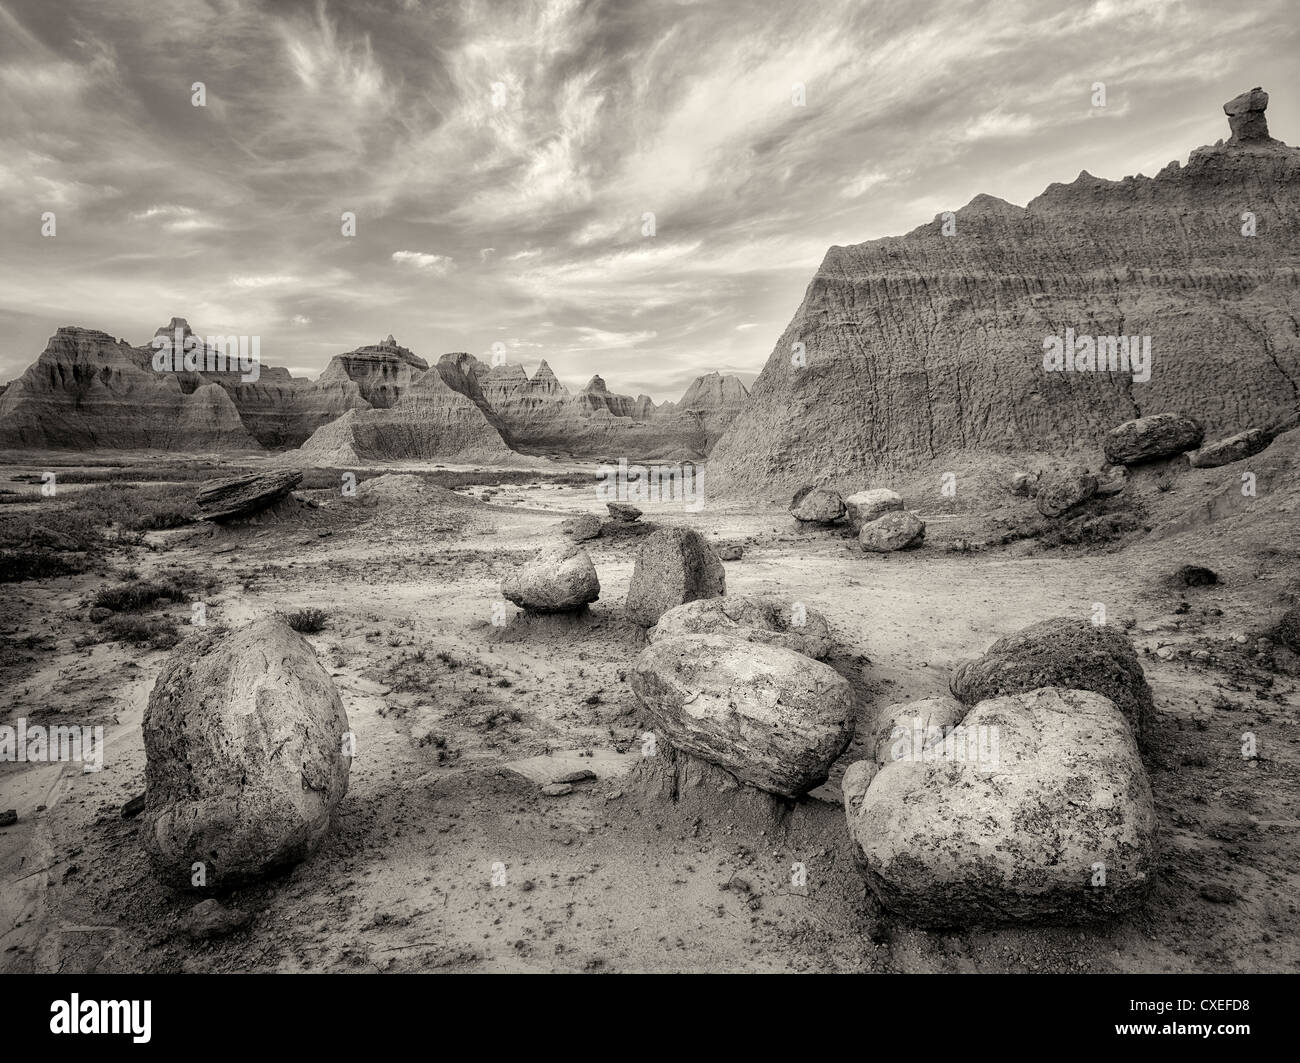 Large boulders and rock formations at sunrise. Badlands National Park, South Dakota. - Stock Image